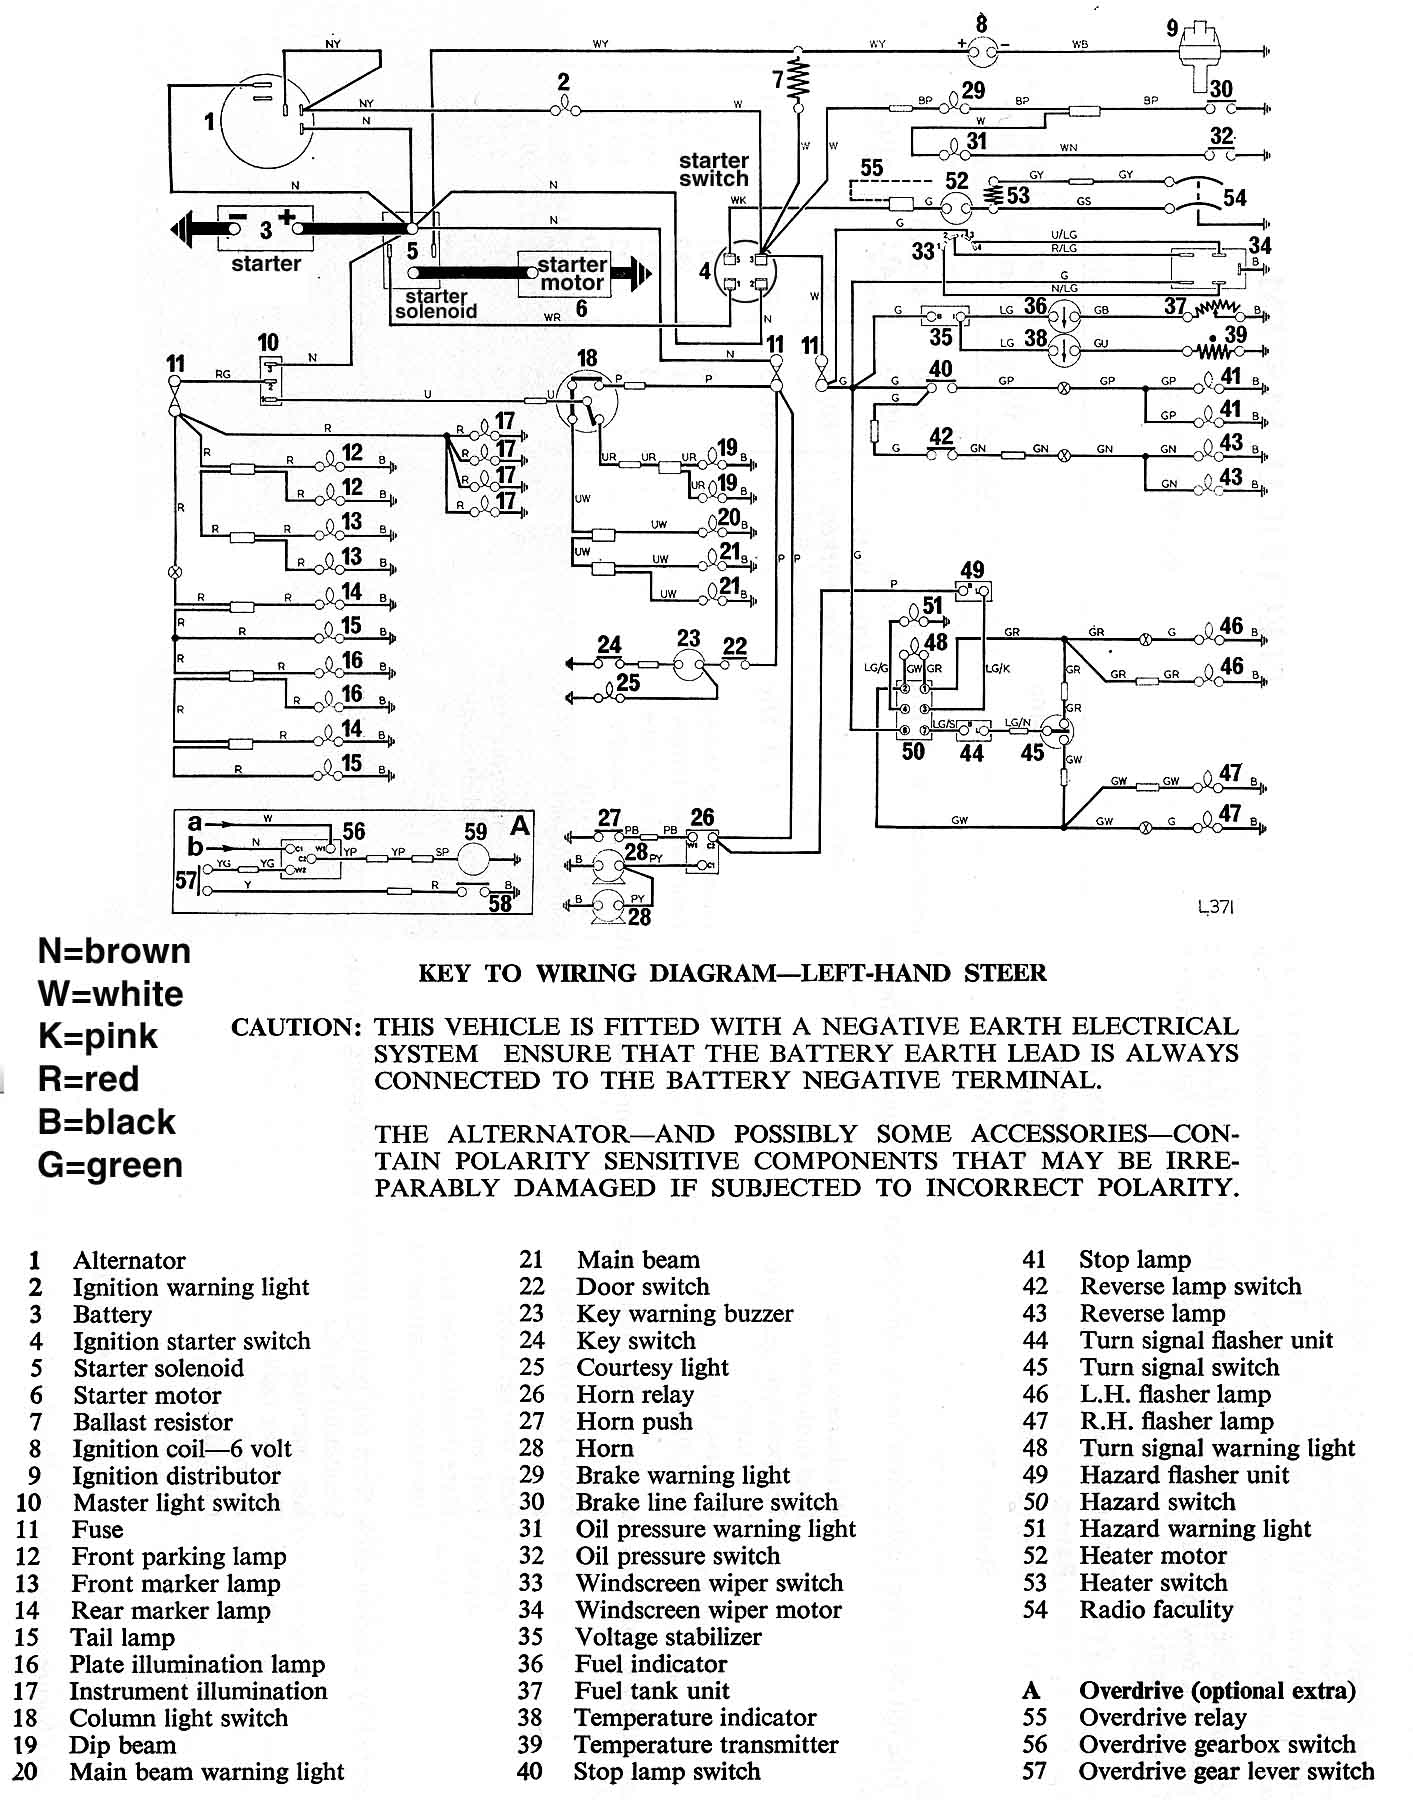 Wiring Schematics And Diagrams Triumph Spitfire Gt6 Herald 79 Ford Alternator Diagram Free Picture Mkiv